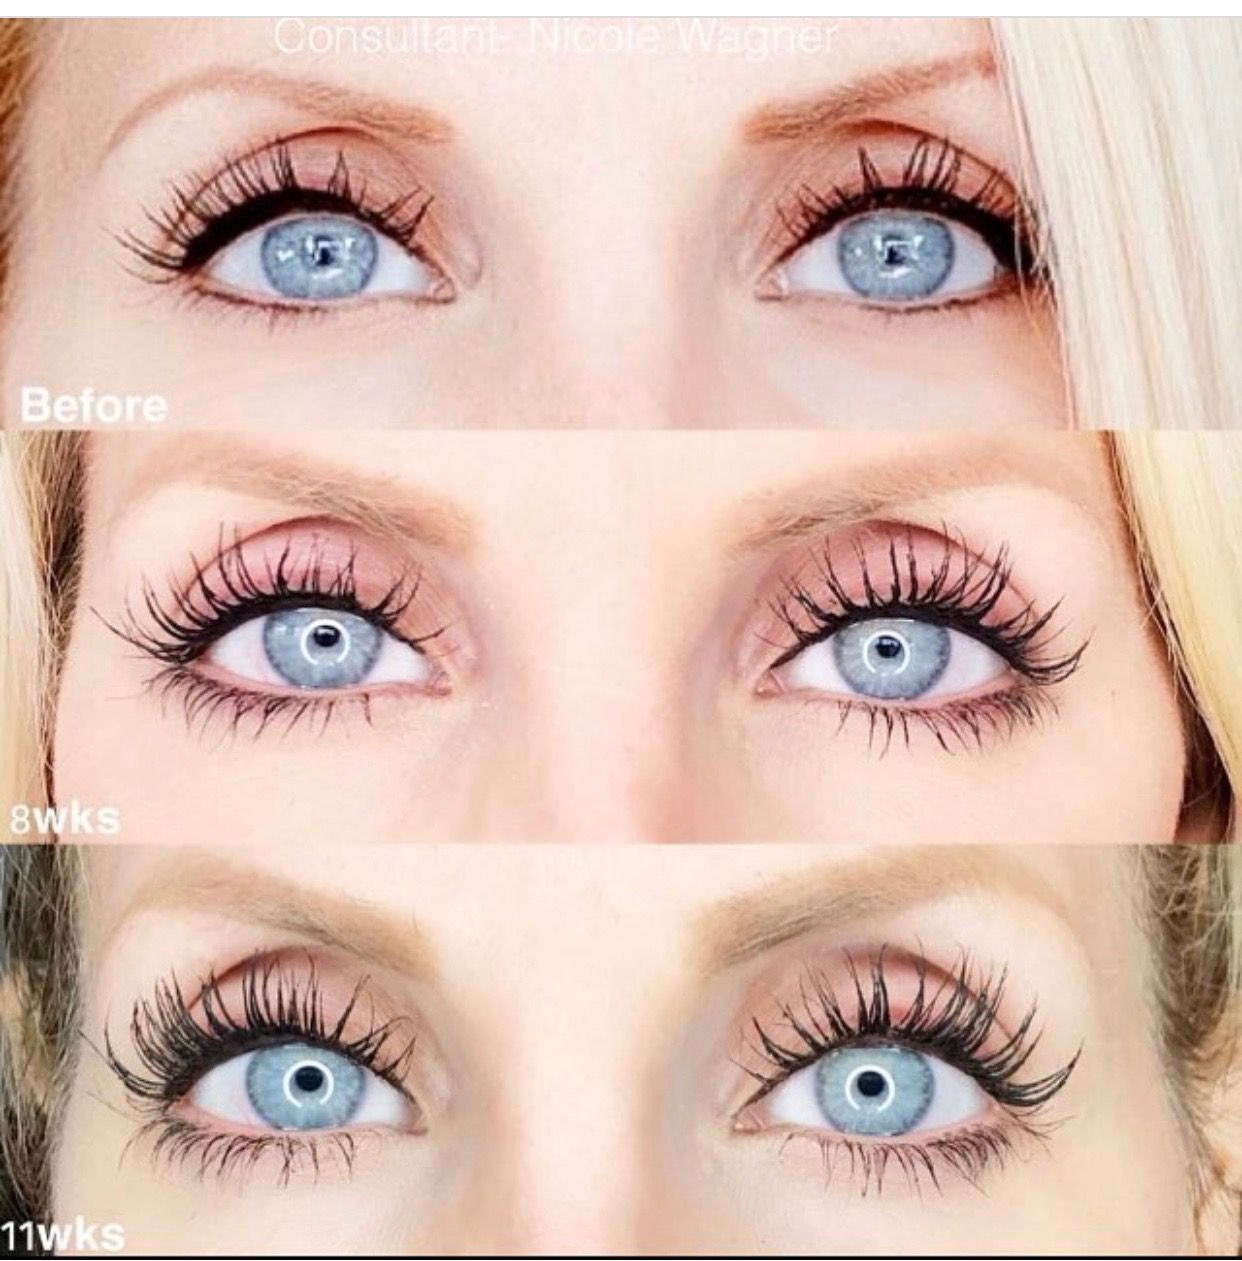 9b203ce8baa Beautiful lashes for Free??? You can have a Free Lash Boost now by becoming  a Preferred Customer with a Regimen order. Offer good through Monday only.